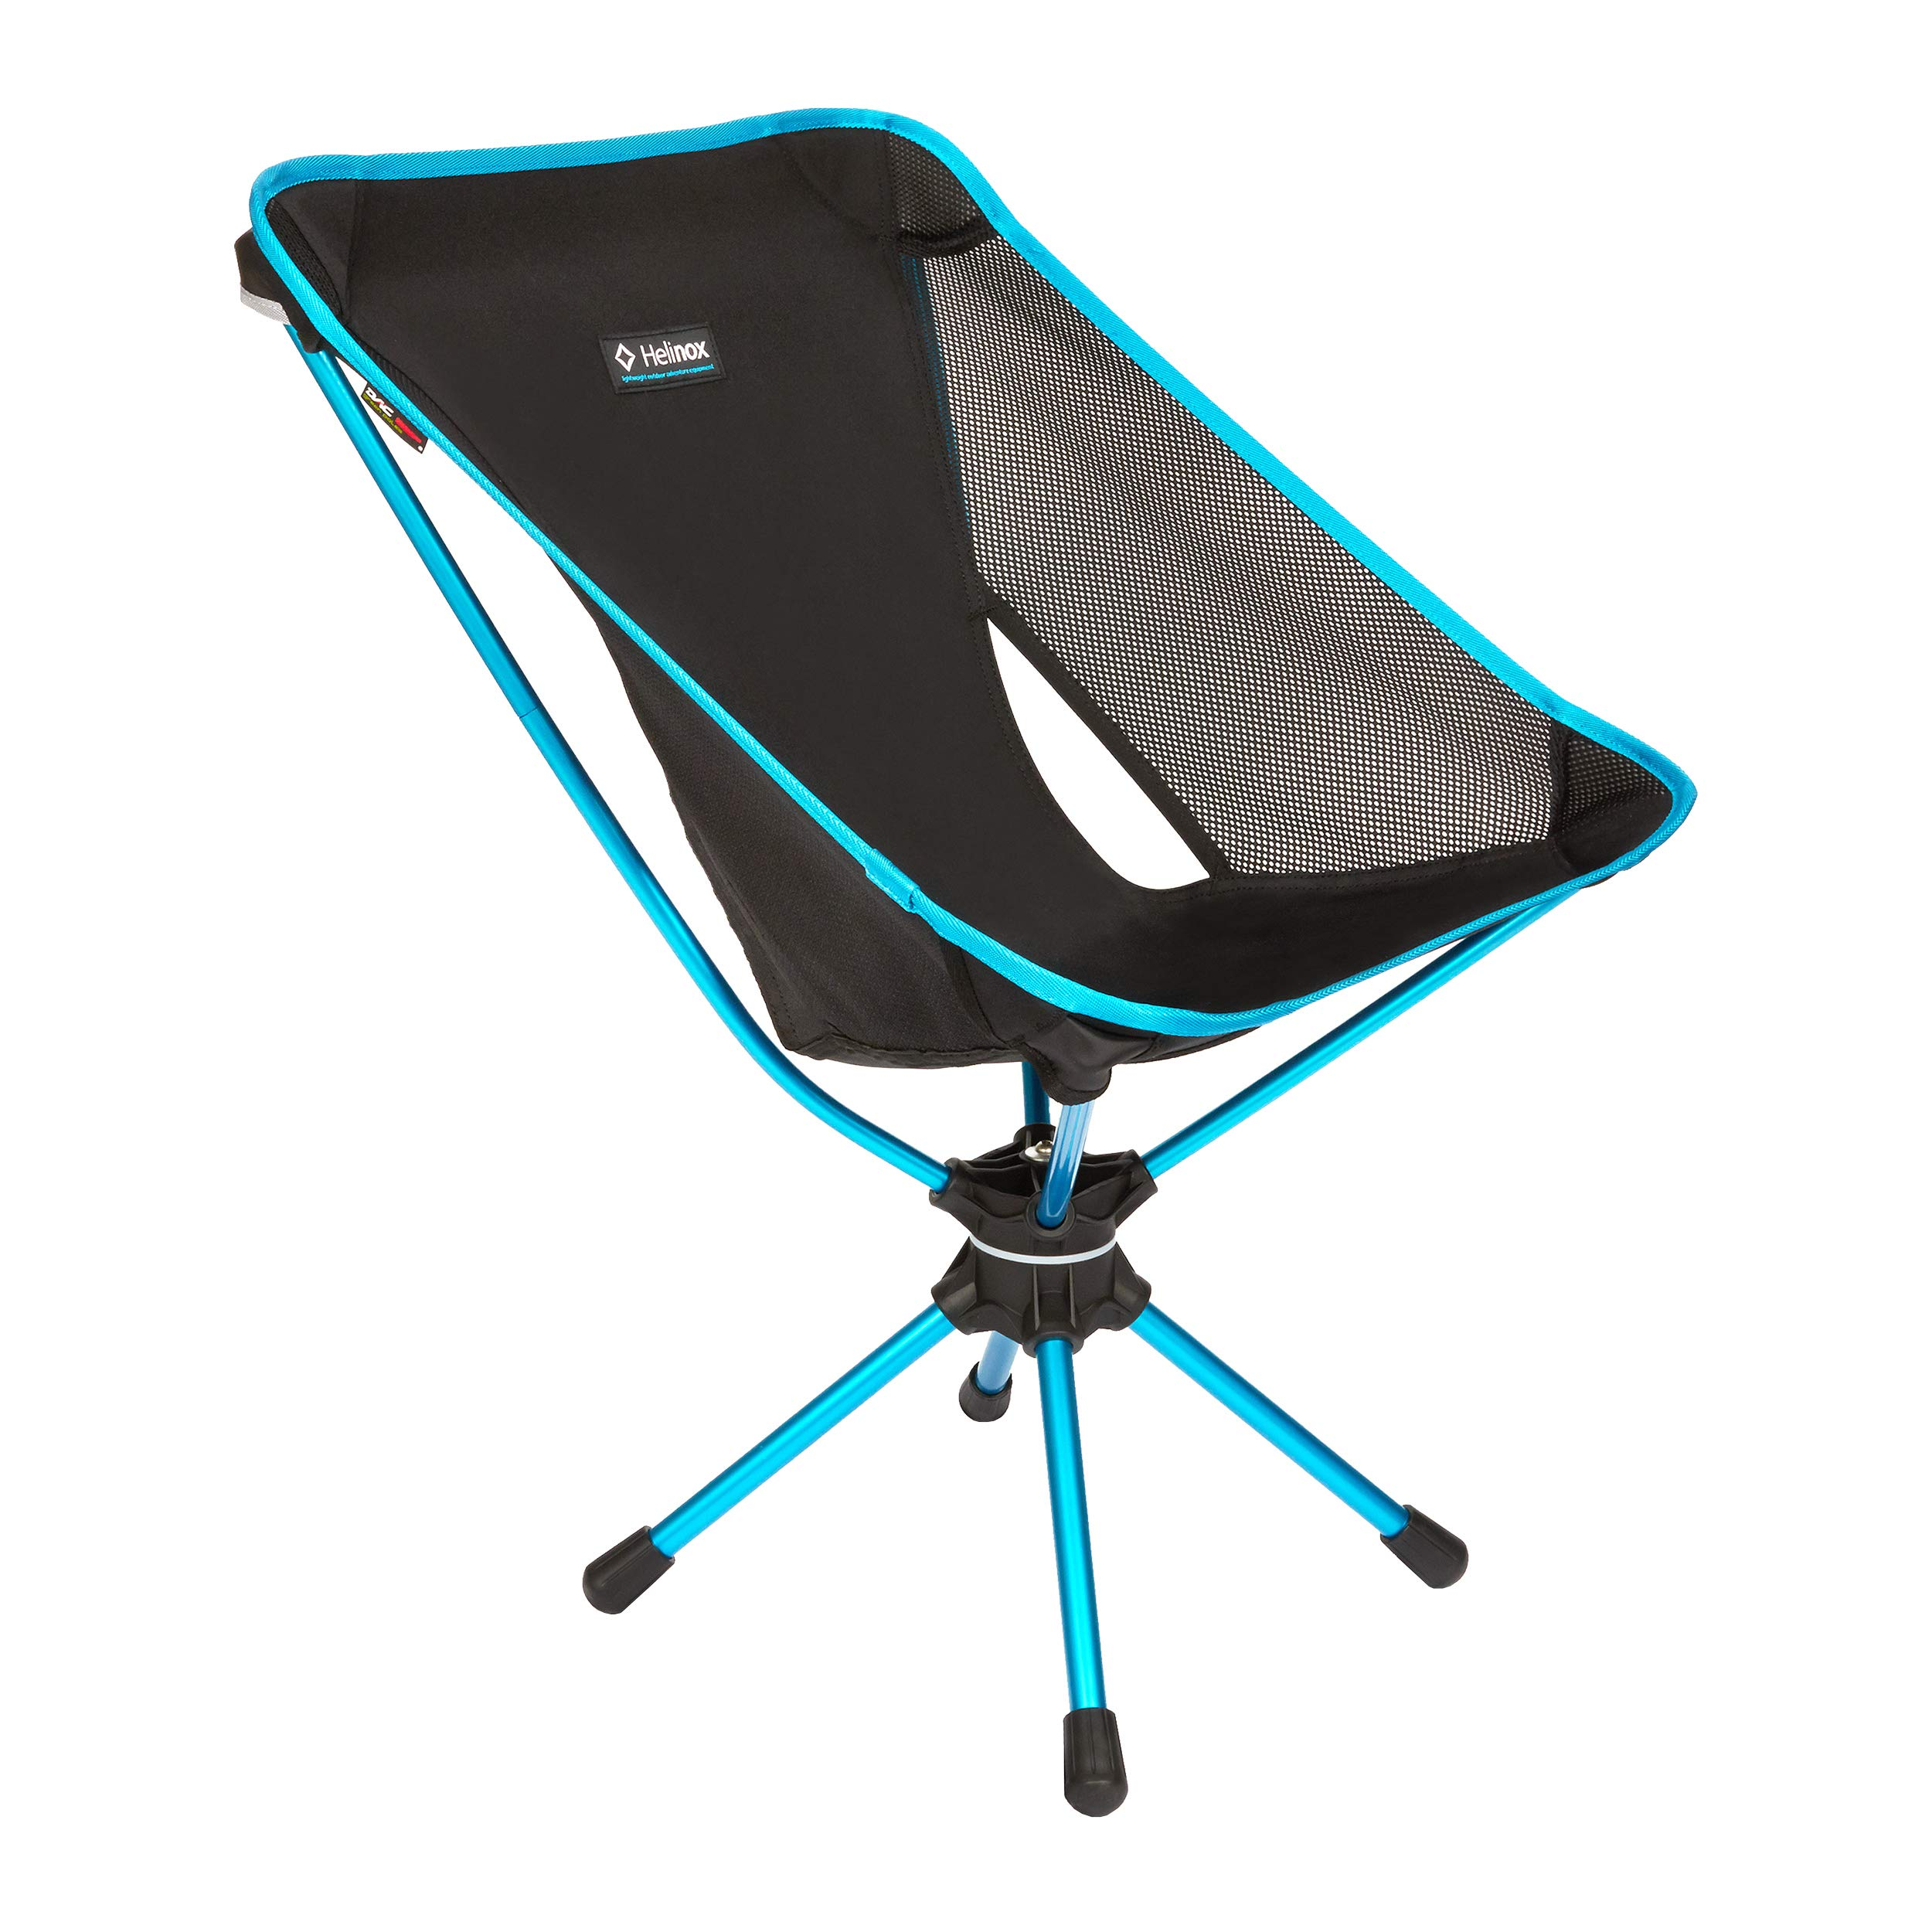 Helinox Swivel Chair Lightweight, Versatile, Compact, Collapsible Camping Chair, Black by Helinox